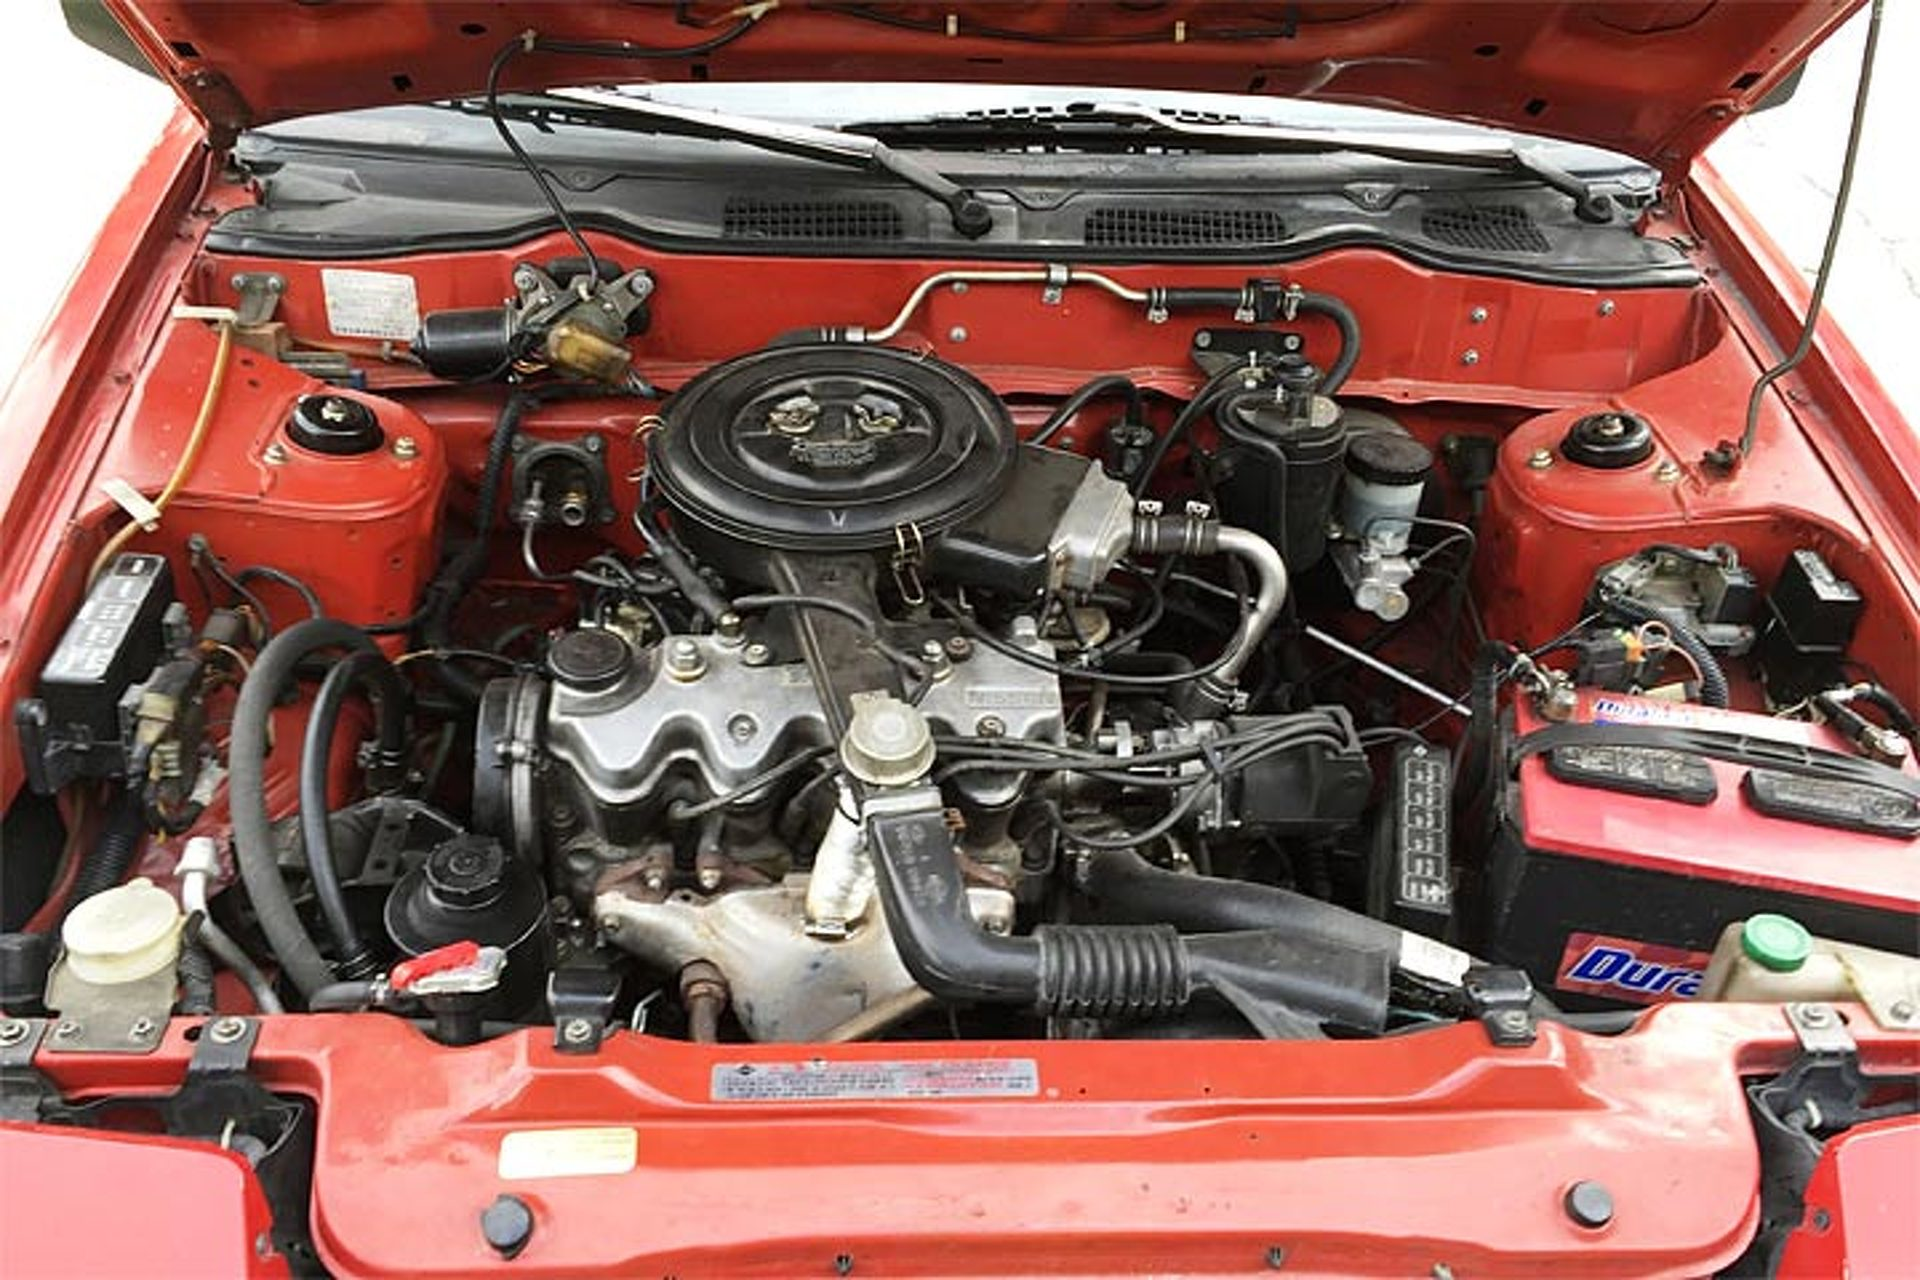 Nissan Pulsar: When in Doubt, Turn It Into a Ute